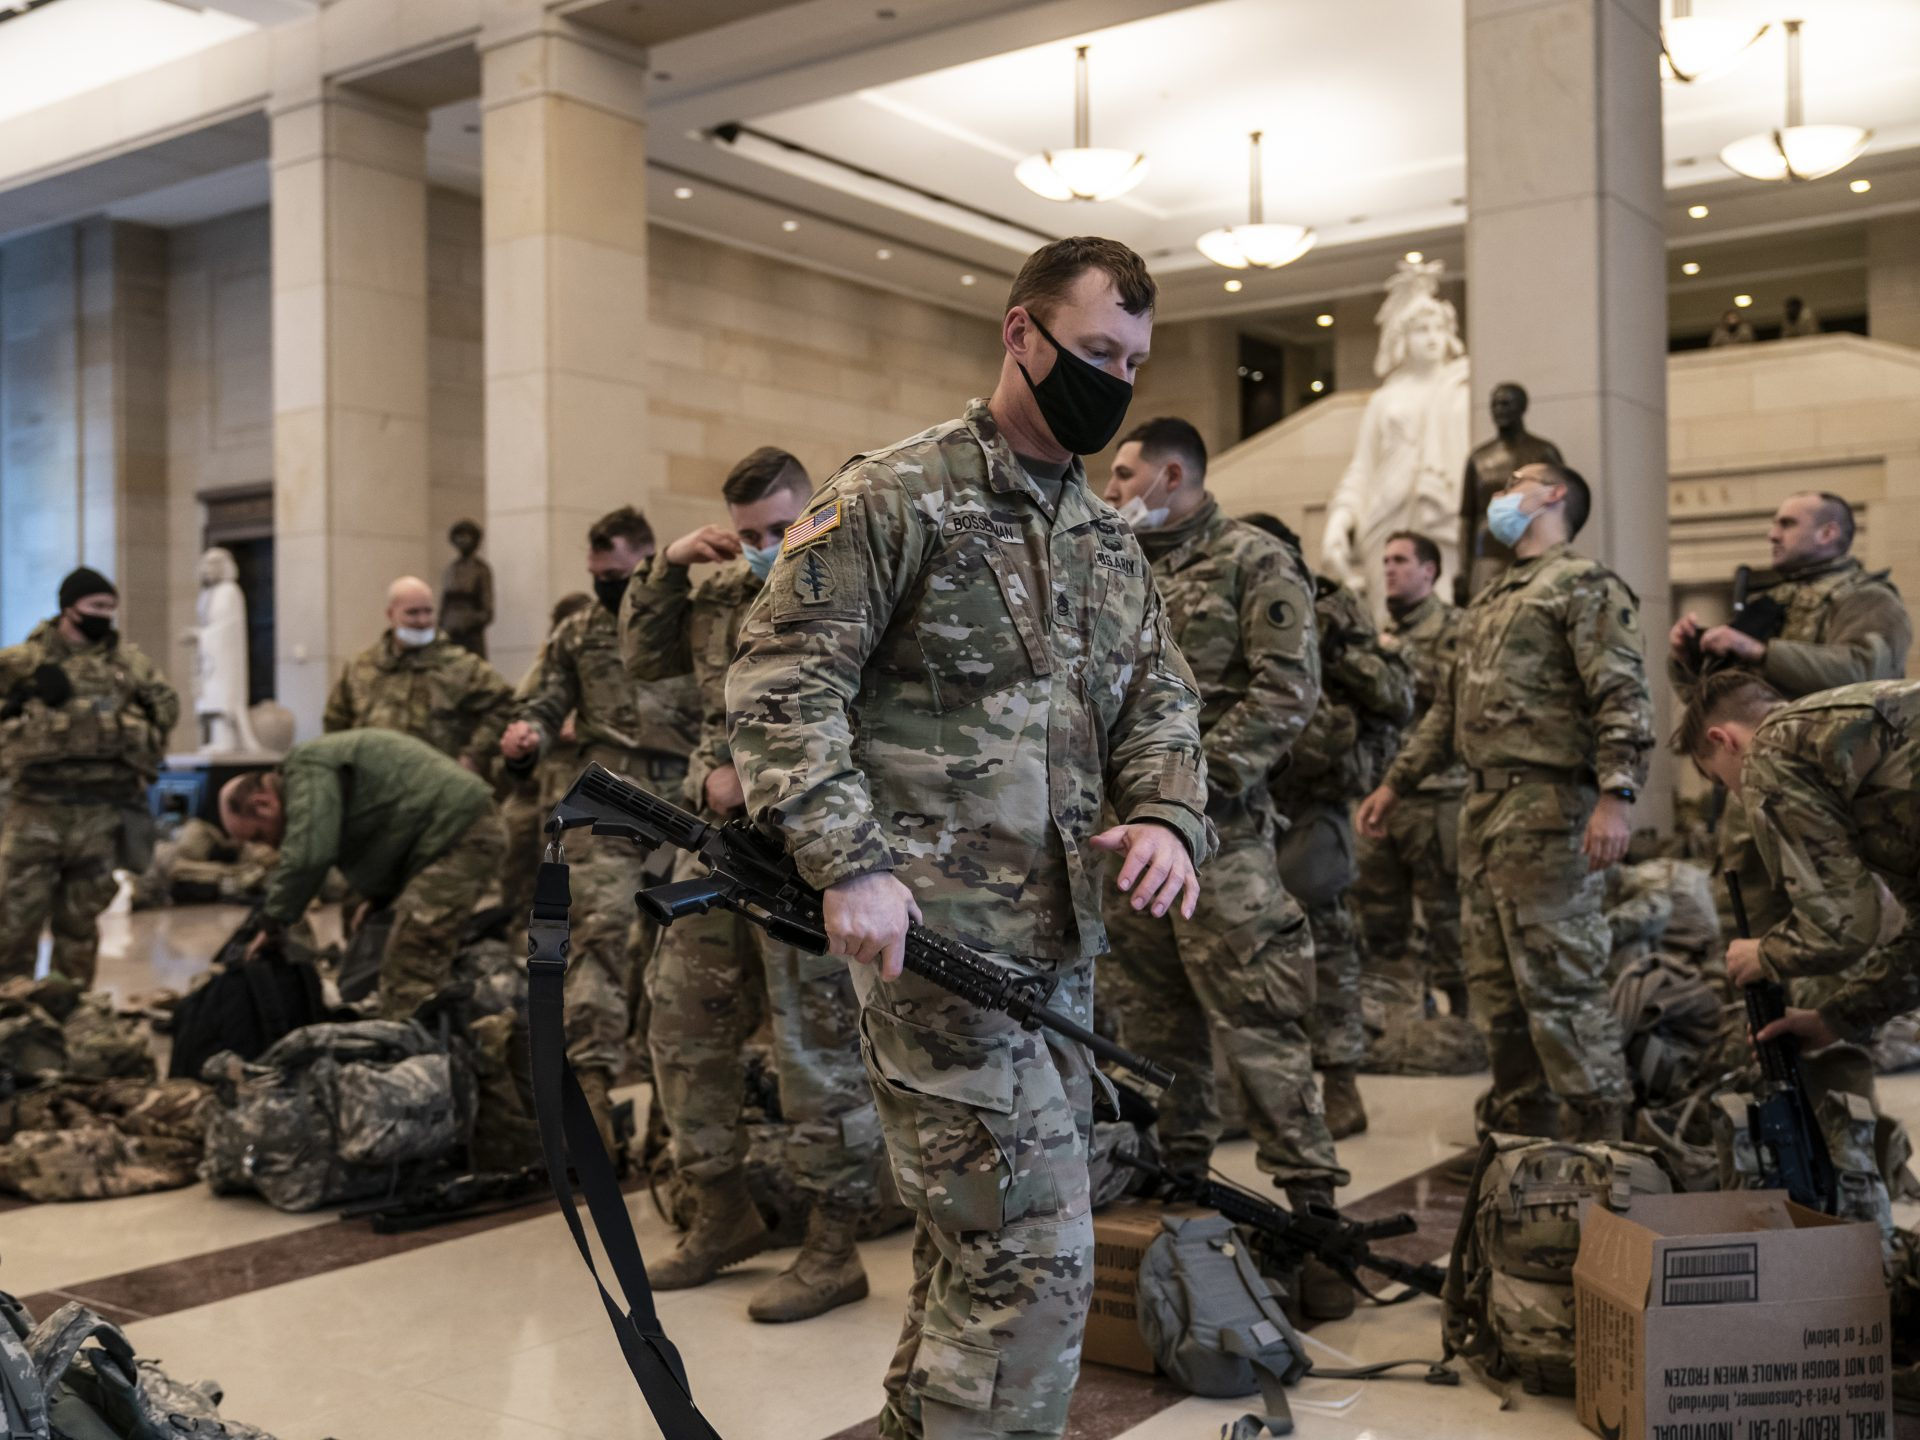 Hundreds of National Guard troops hold inside the Capitol Visitor's Center to reinforce security at the Capitol in Washington on Wednesday. It comes a week after an insurrection at the Capitol and as the House of Representatives is pursuing an article of impeachment against President Trump.